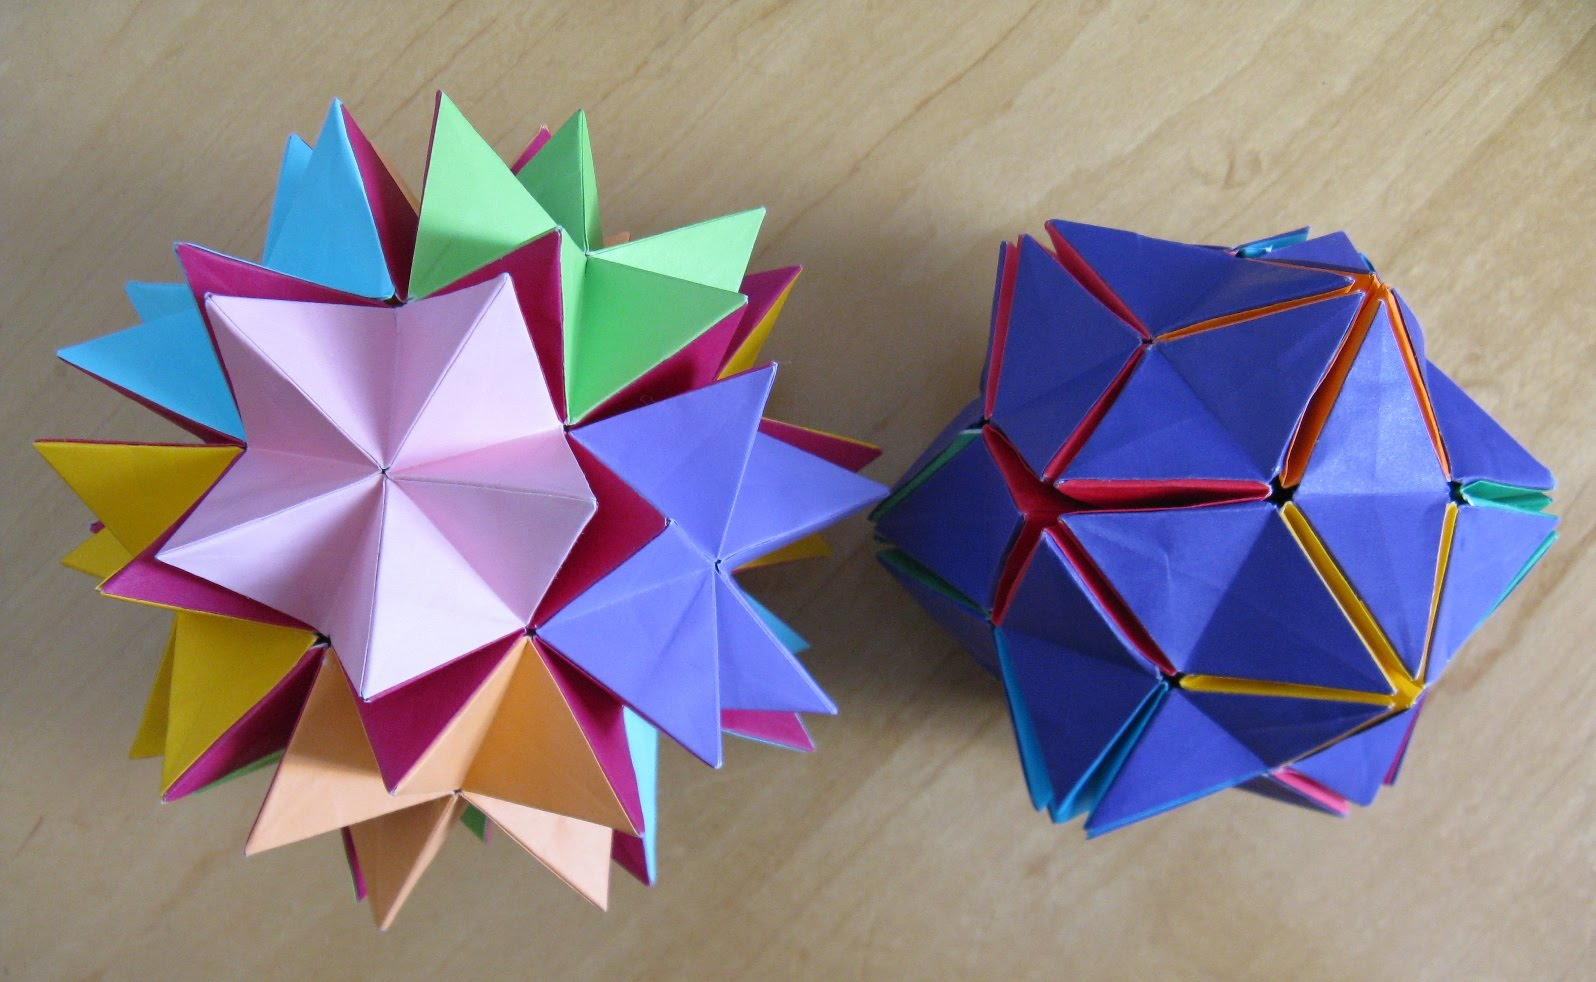 star flower origami diagram vtx 1300 wiring maniacs revealed